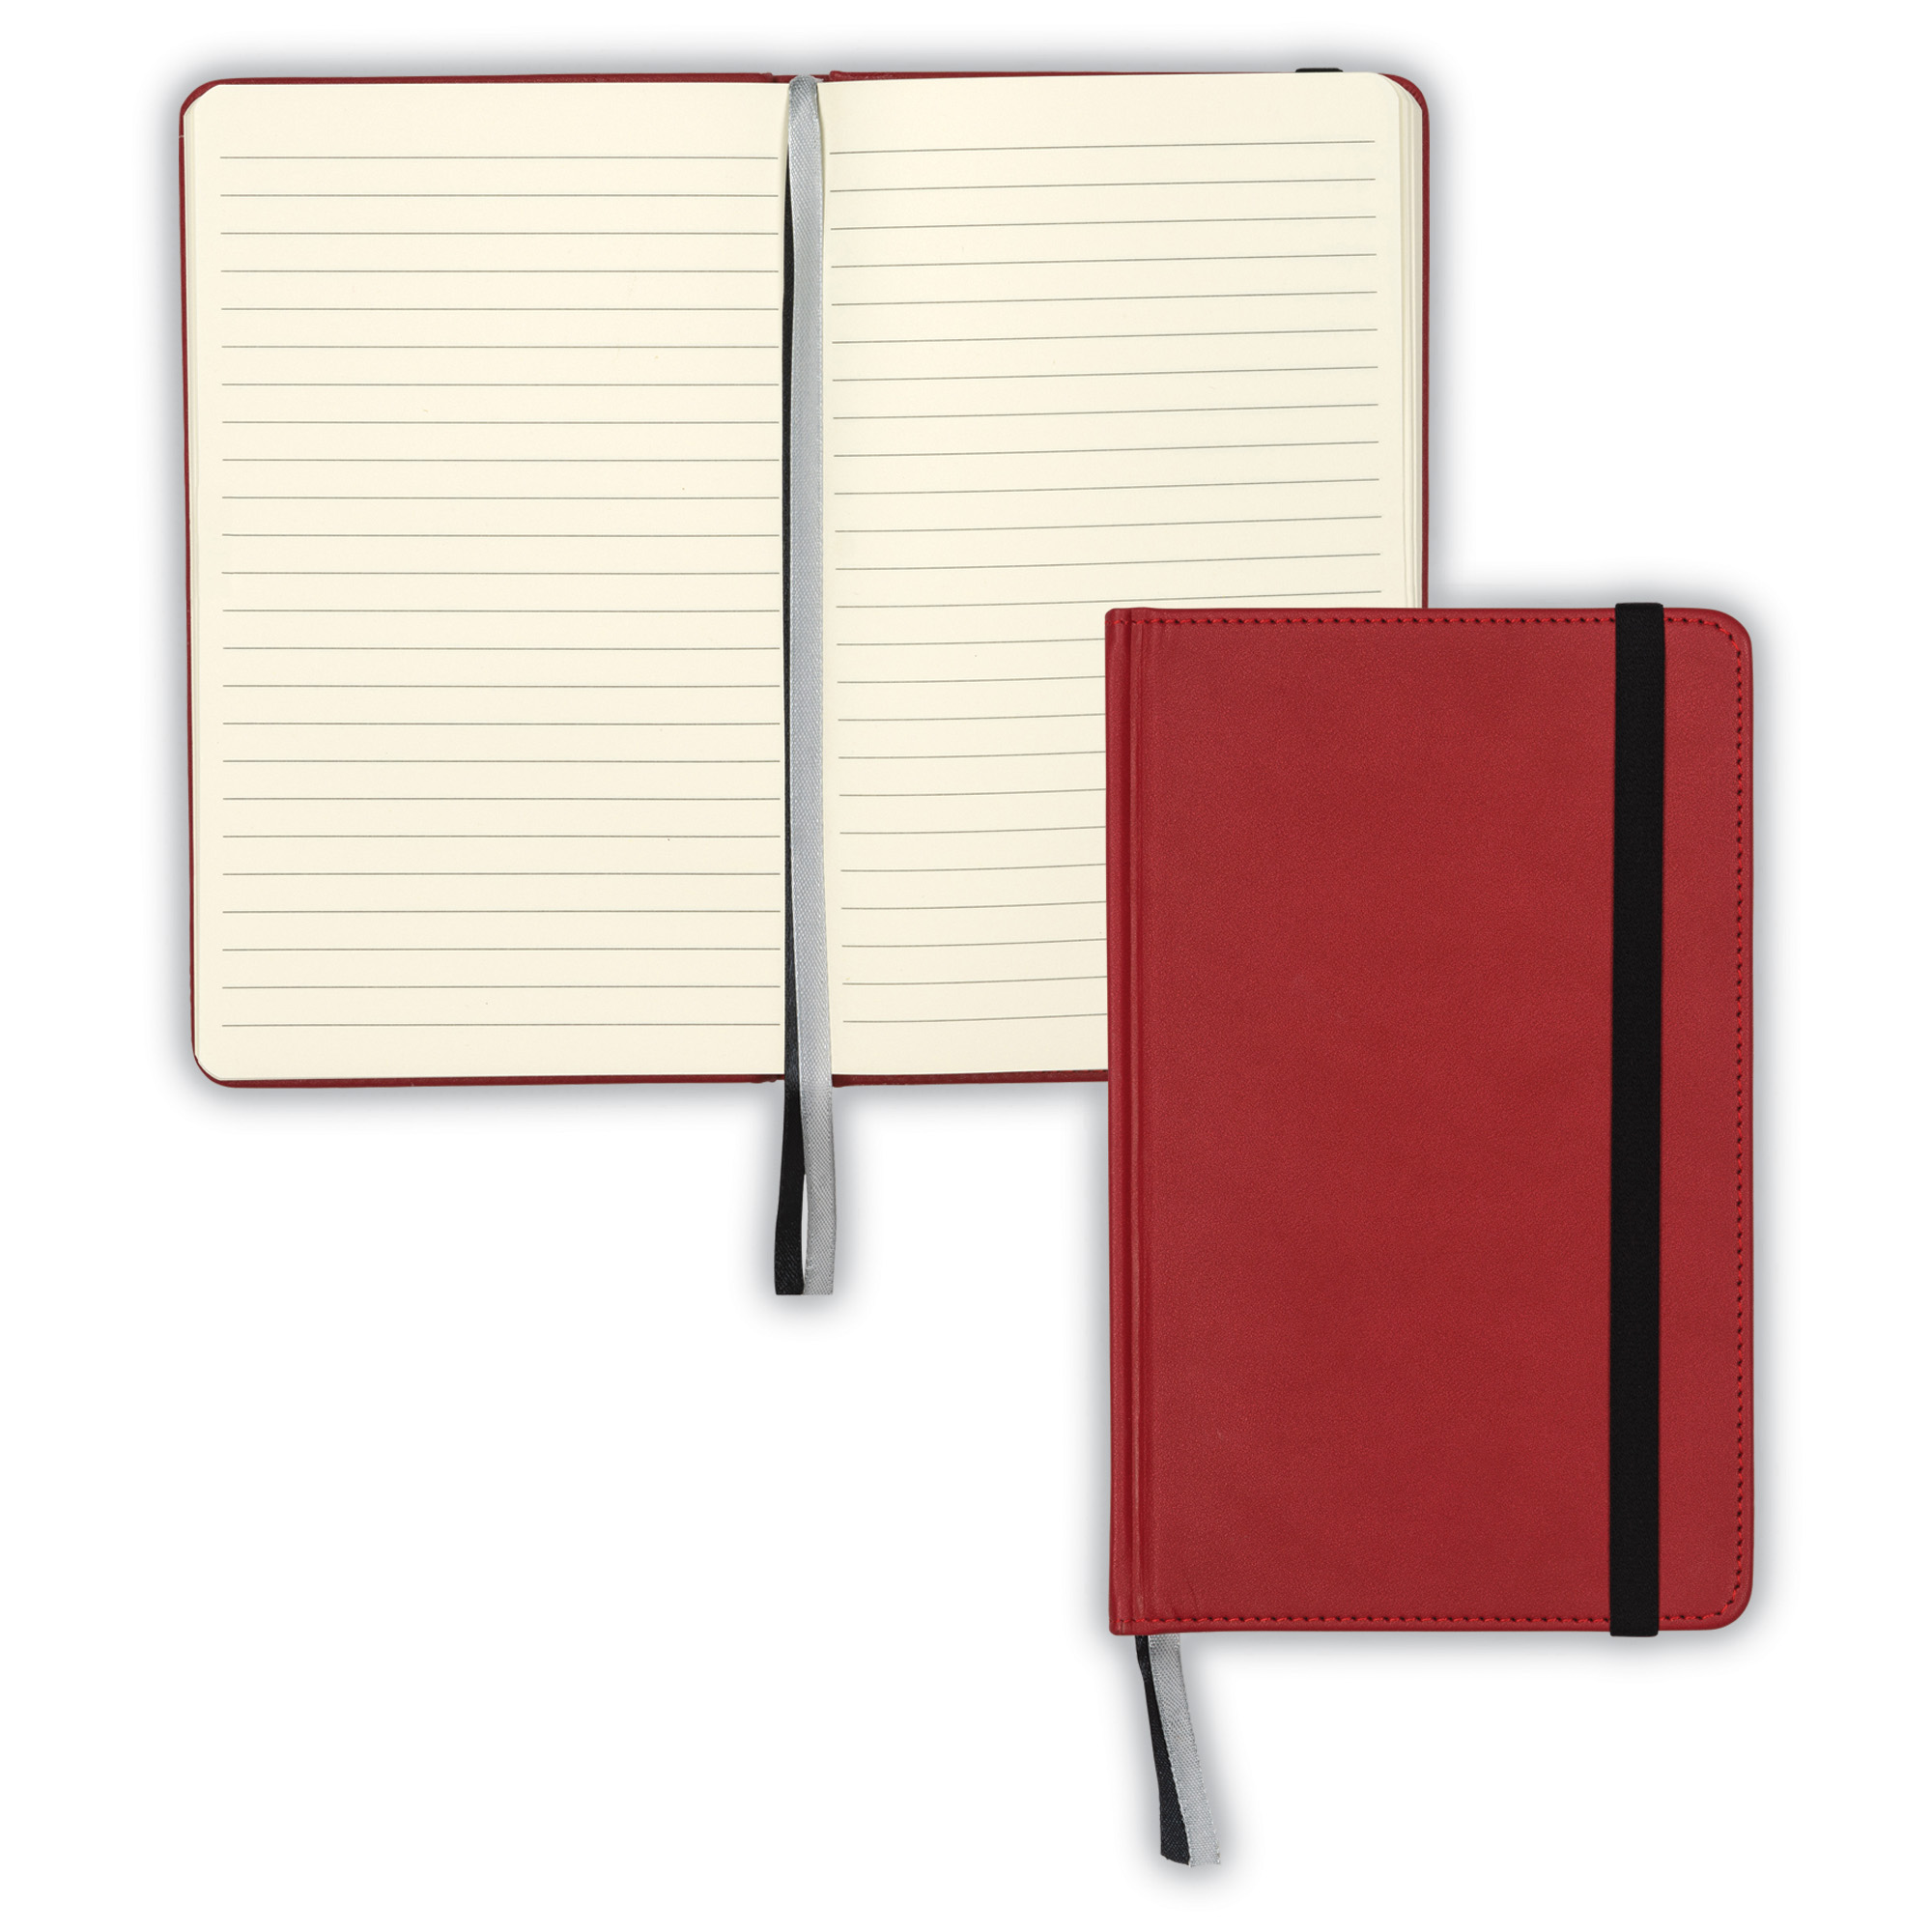 samsill journal, samsill notebook, samsill, journal, notebook, red journal, red notebook